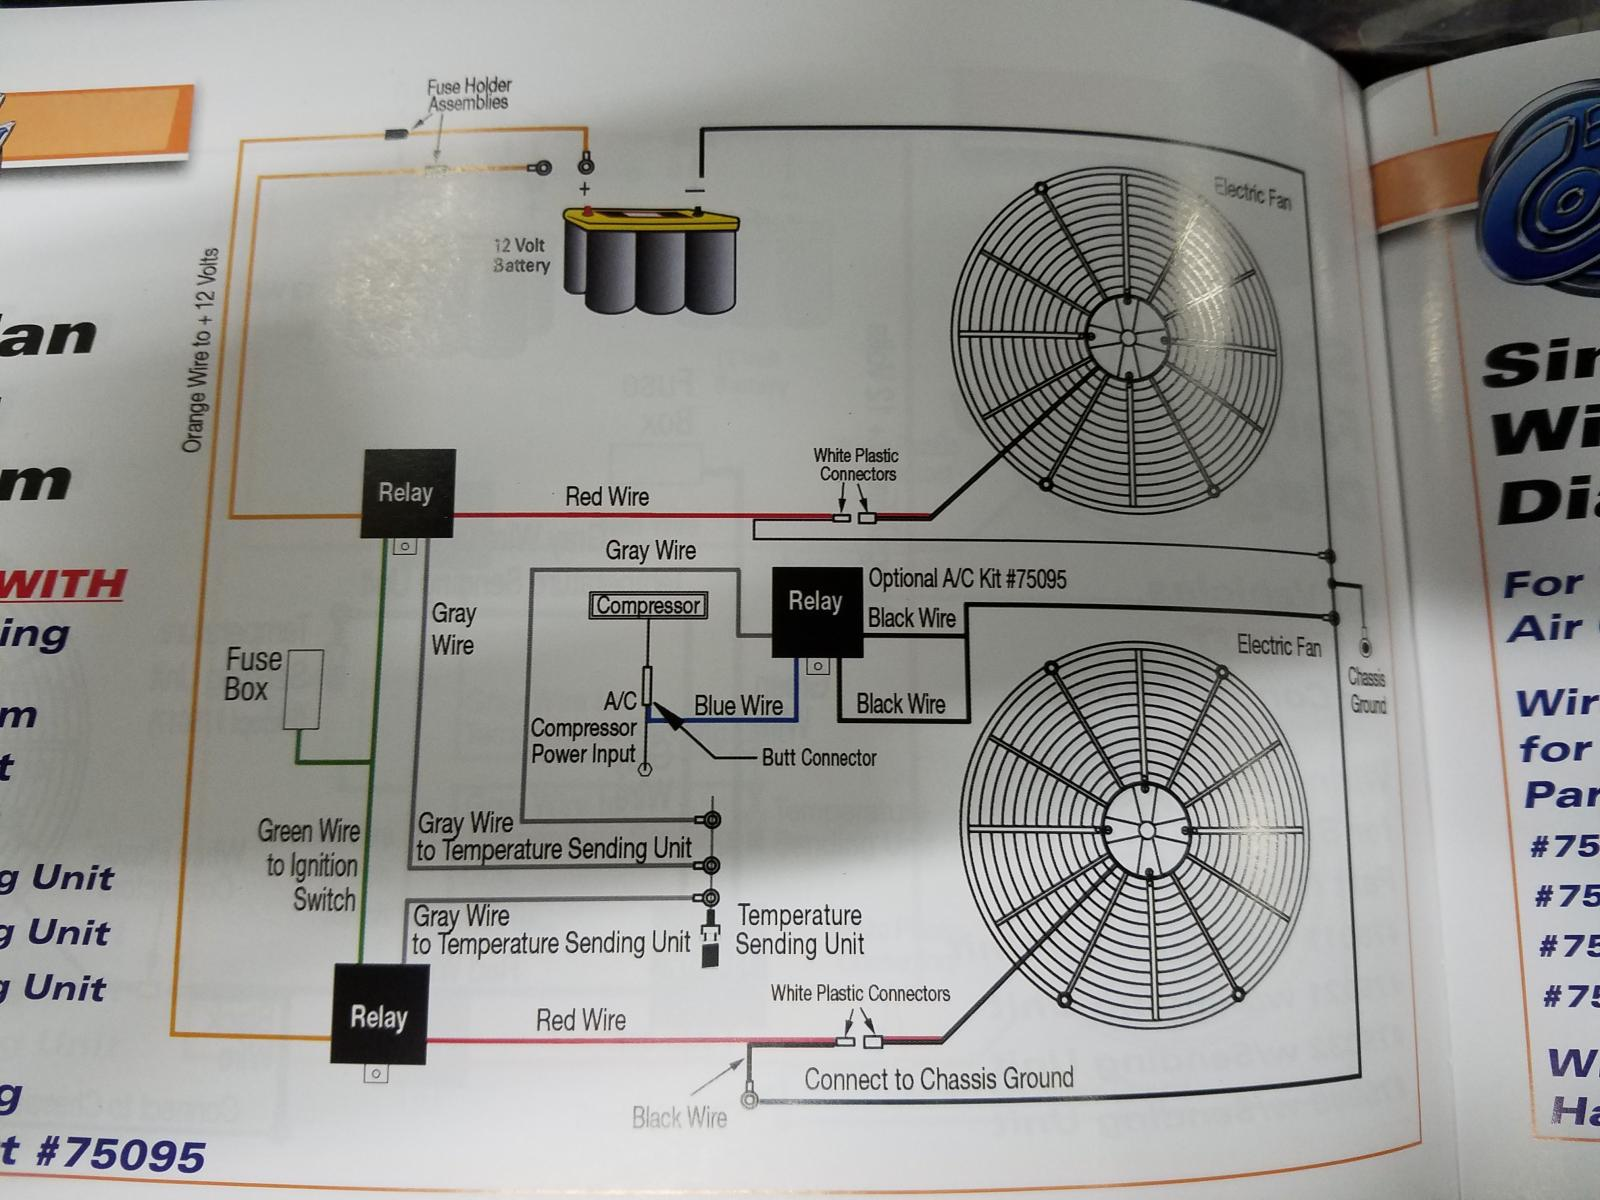 [NRIO_4796]   DR_3468] Wiring Diagram Dual Fans Also Vintage Air Trinary Switch Wiring  Free Diagram | Aac Trinary Switch Wiring |  | Gray Wedab Mohammedshrine Librar Wiring 101